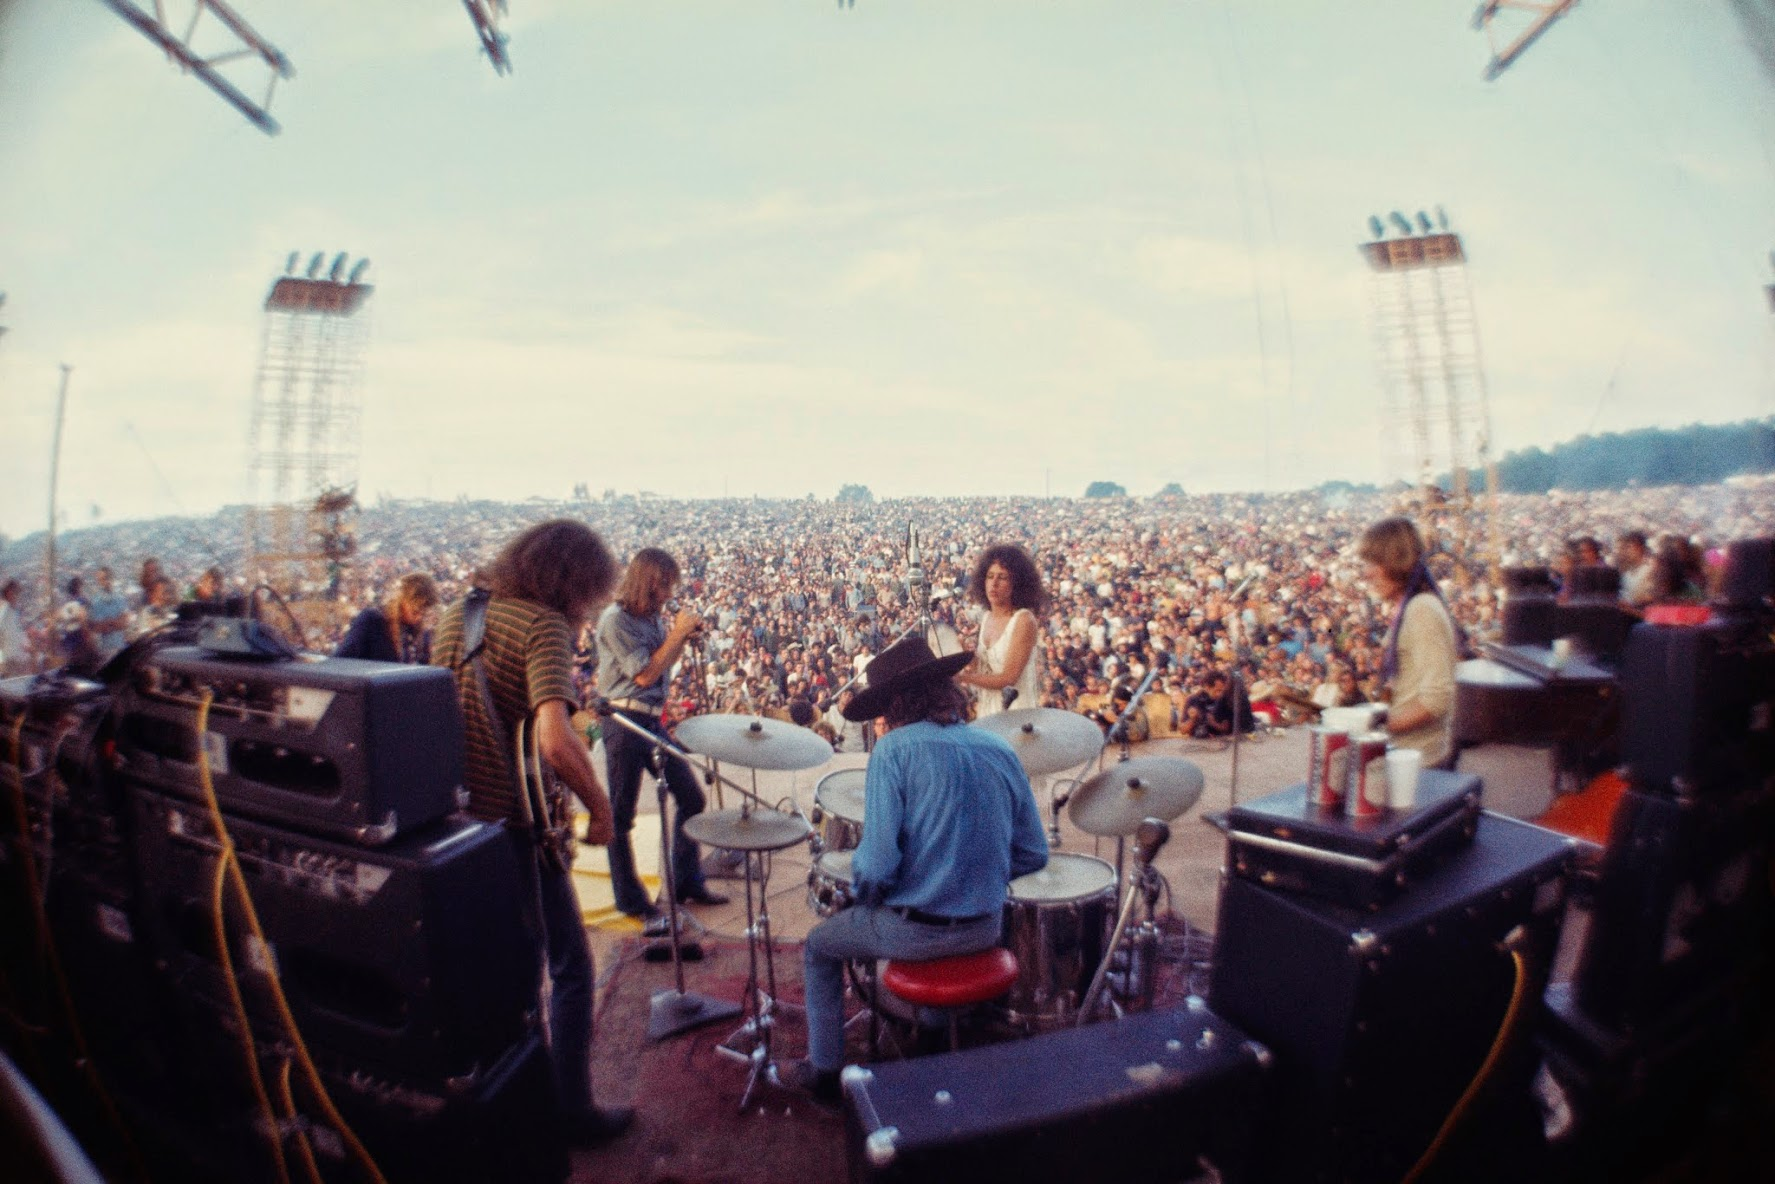 jefferson airplane concert